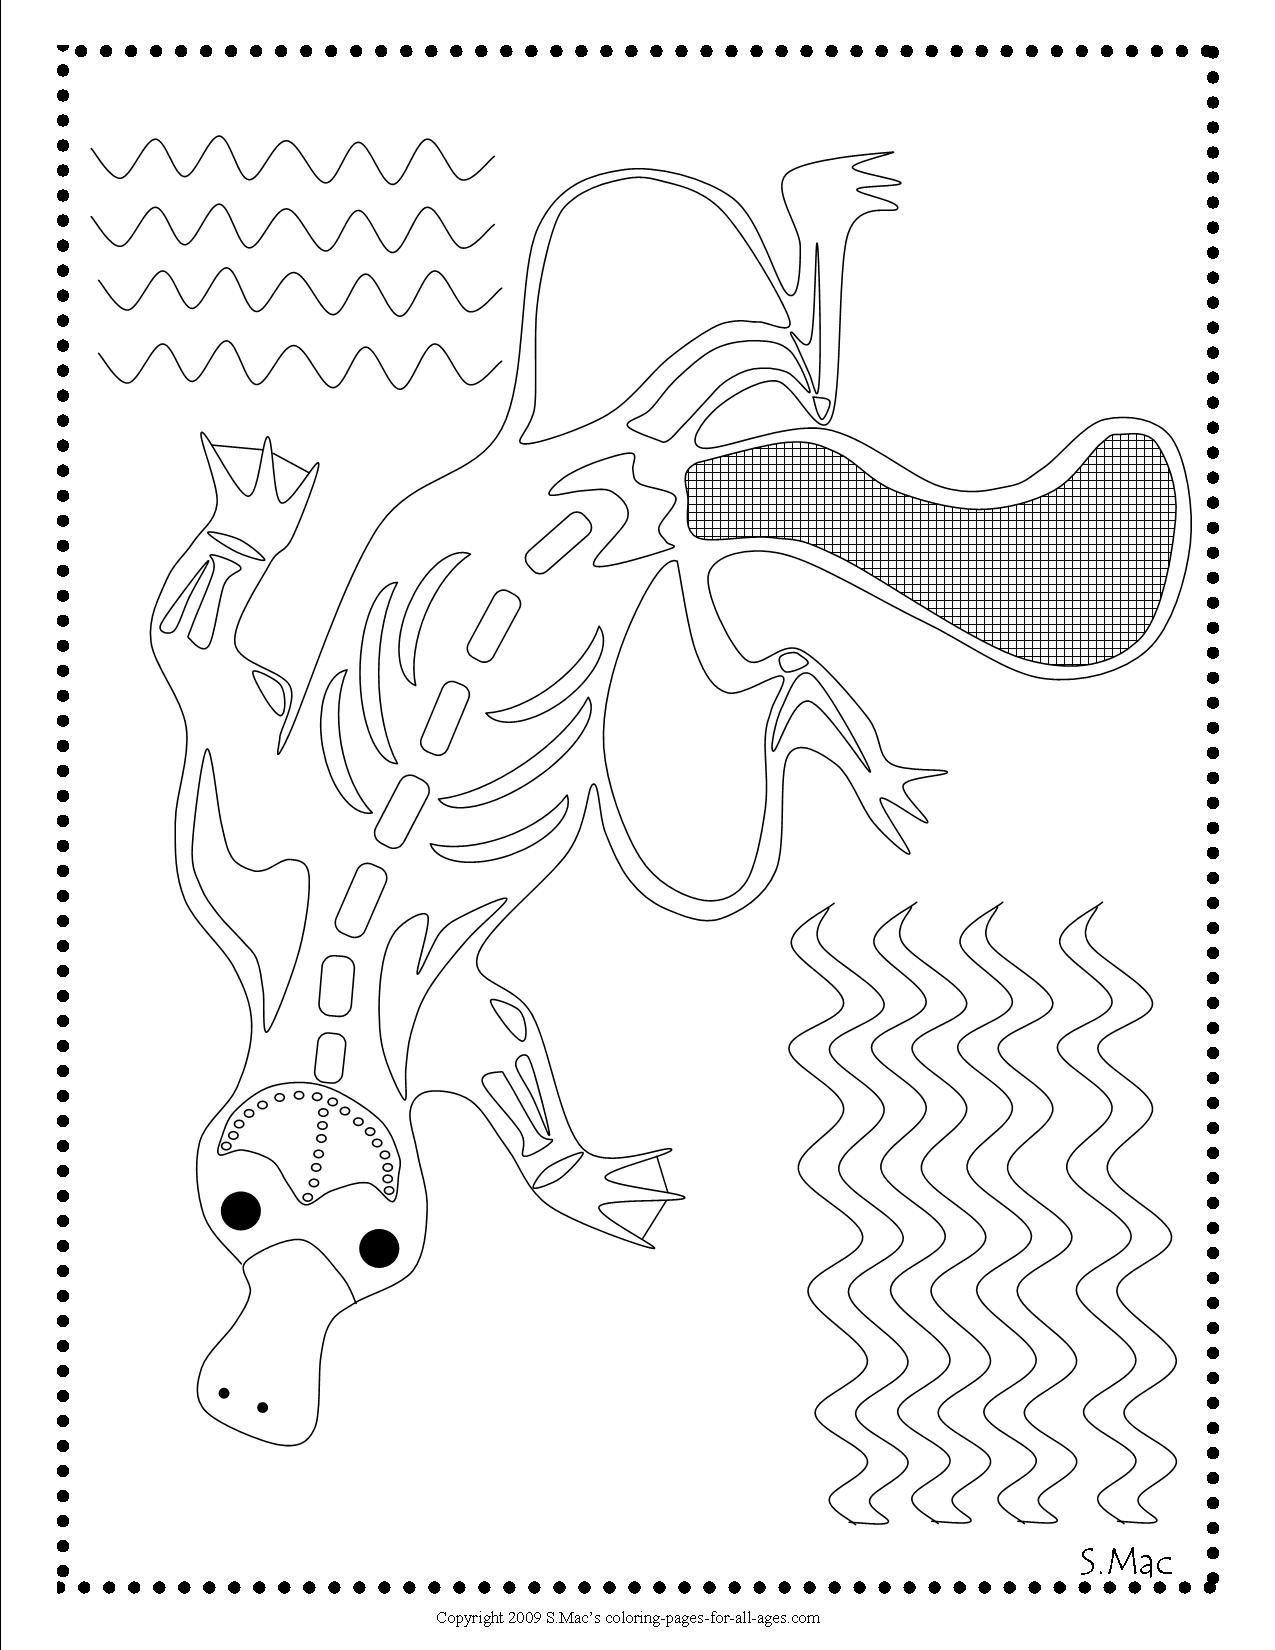 X Ray Art Coloring Pages Xray Art Colouring Art Therapy Aboriginal Dot Painting